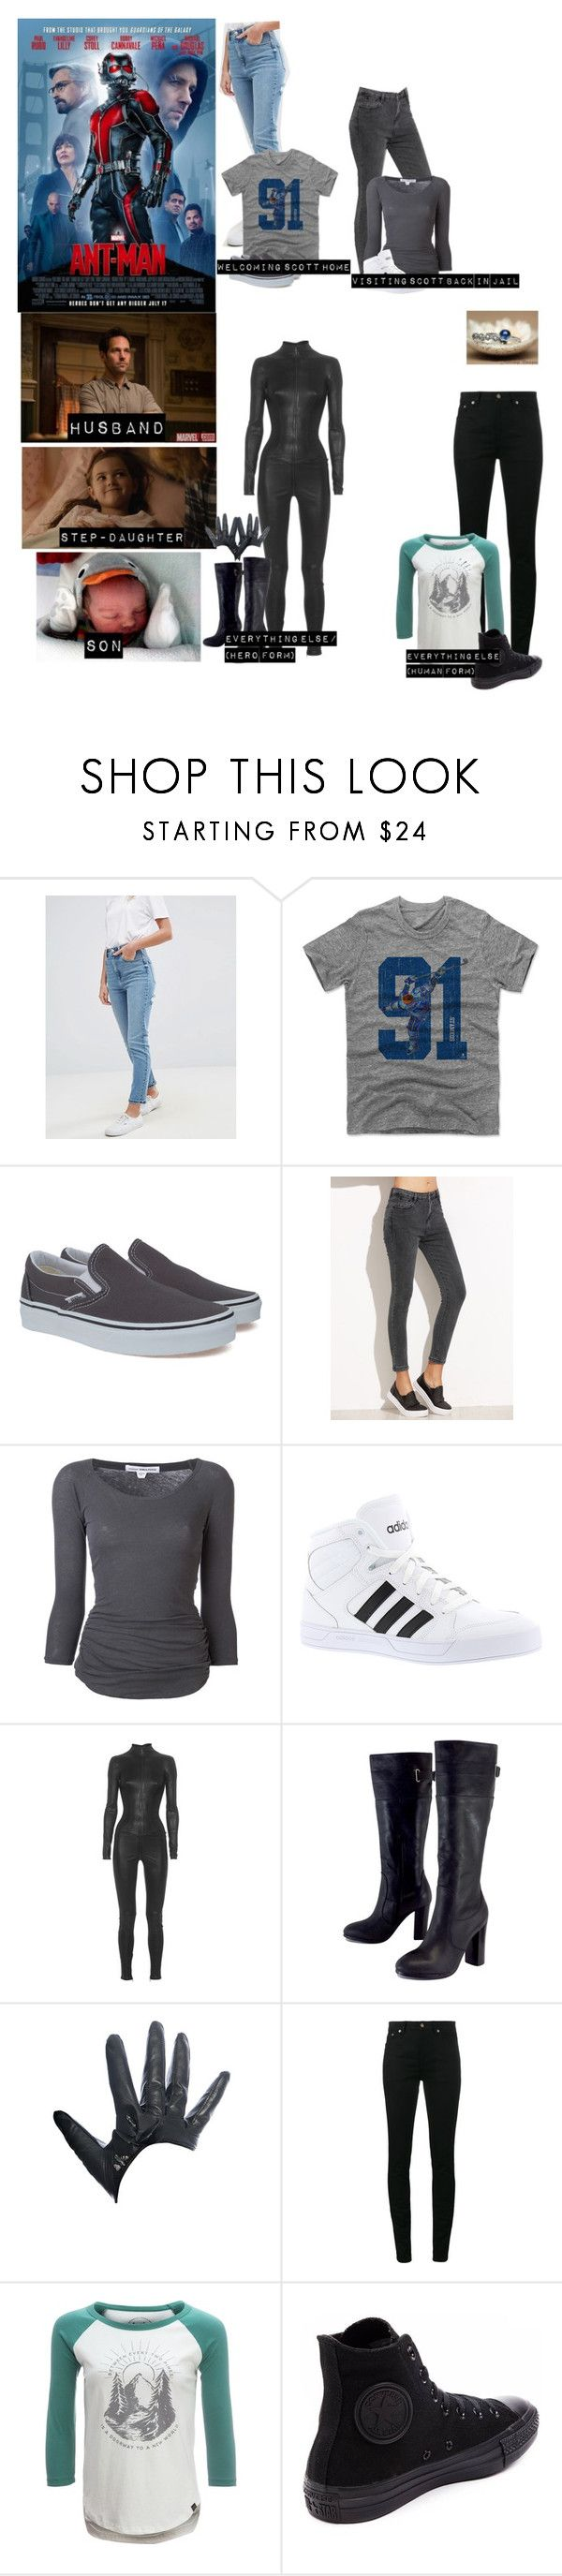 """Me in ""Ant-Man"""" by sunshineadrenaline ❤ liked on Polyvore featuring Humör, Ryder, ASOS, Vans, James Perse, adidas, Aphero, Kelsi Dagger Brooklyn, Fracomina and Yves Saint Laurent"